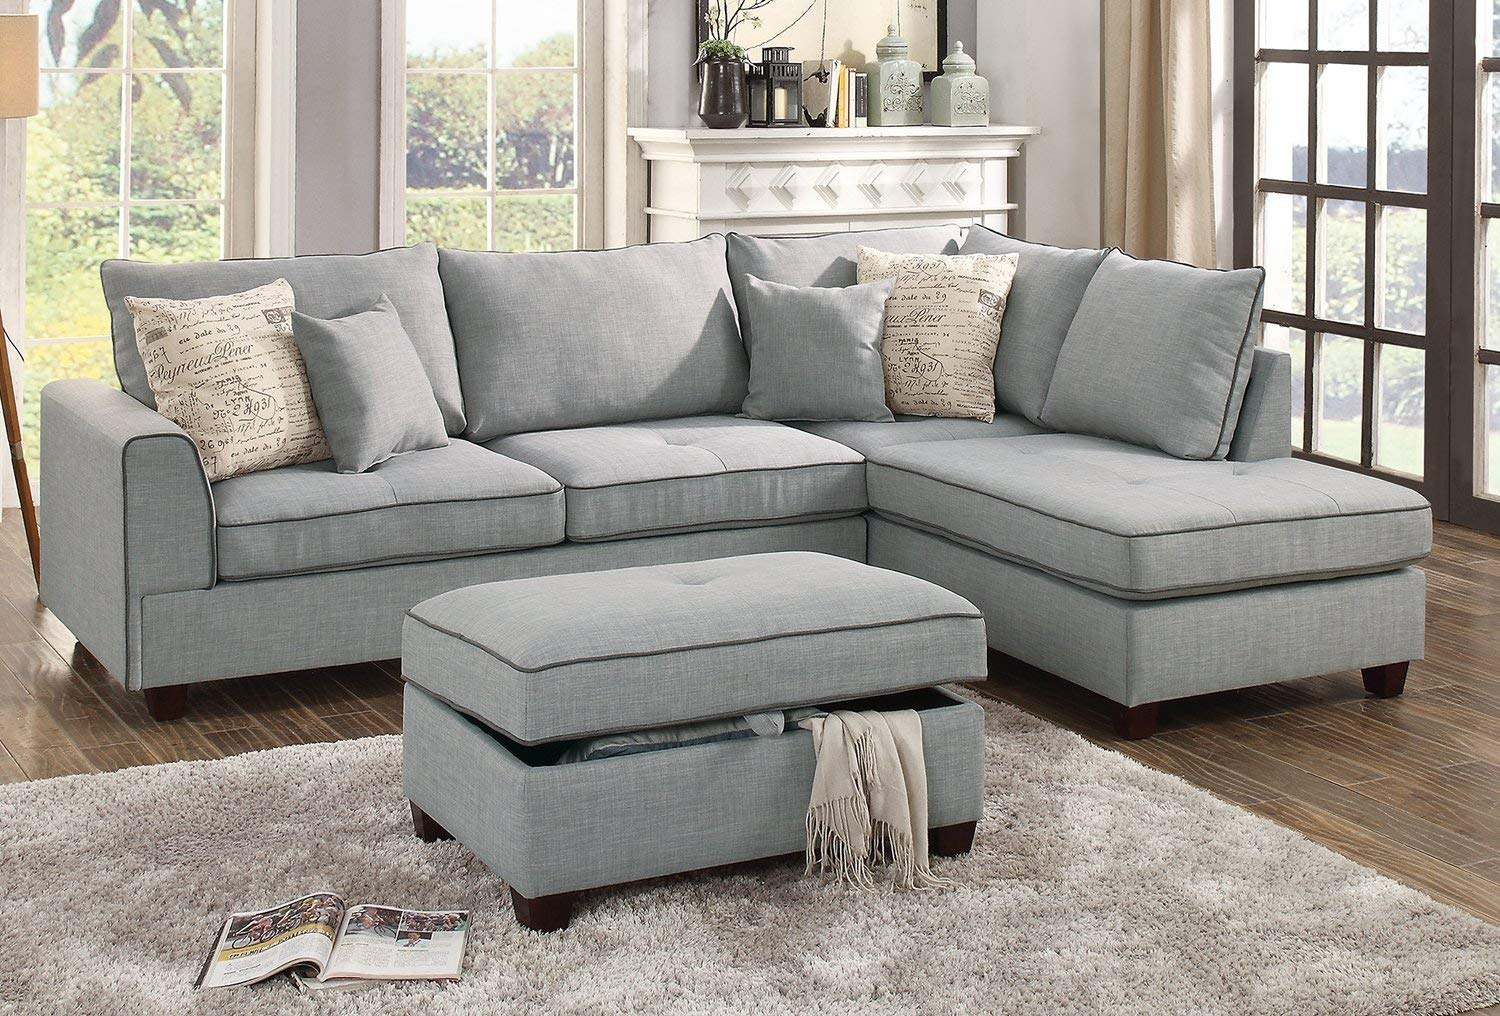 Image of: Cheap Grey Sofa Pillows Find Grey Sofa Pillows Deals On Line At Alibaba Com